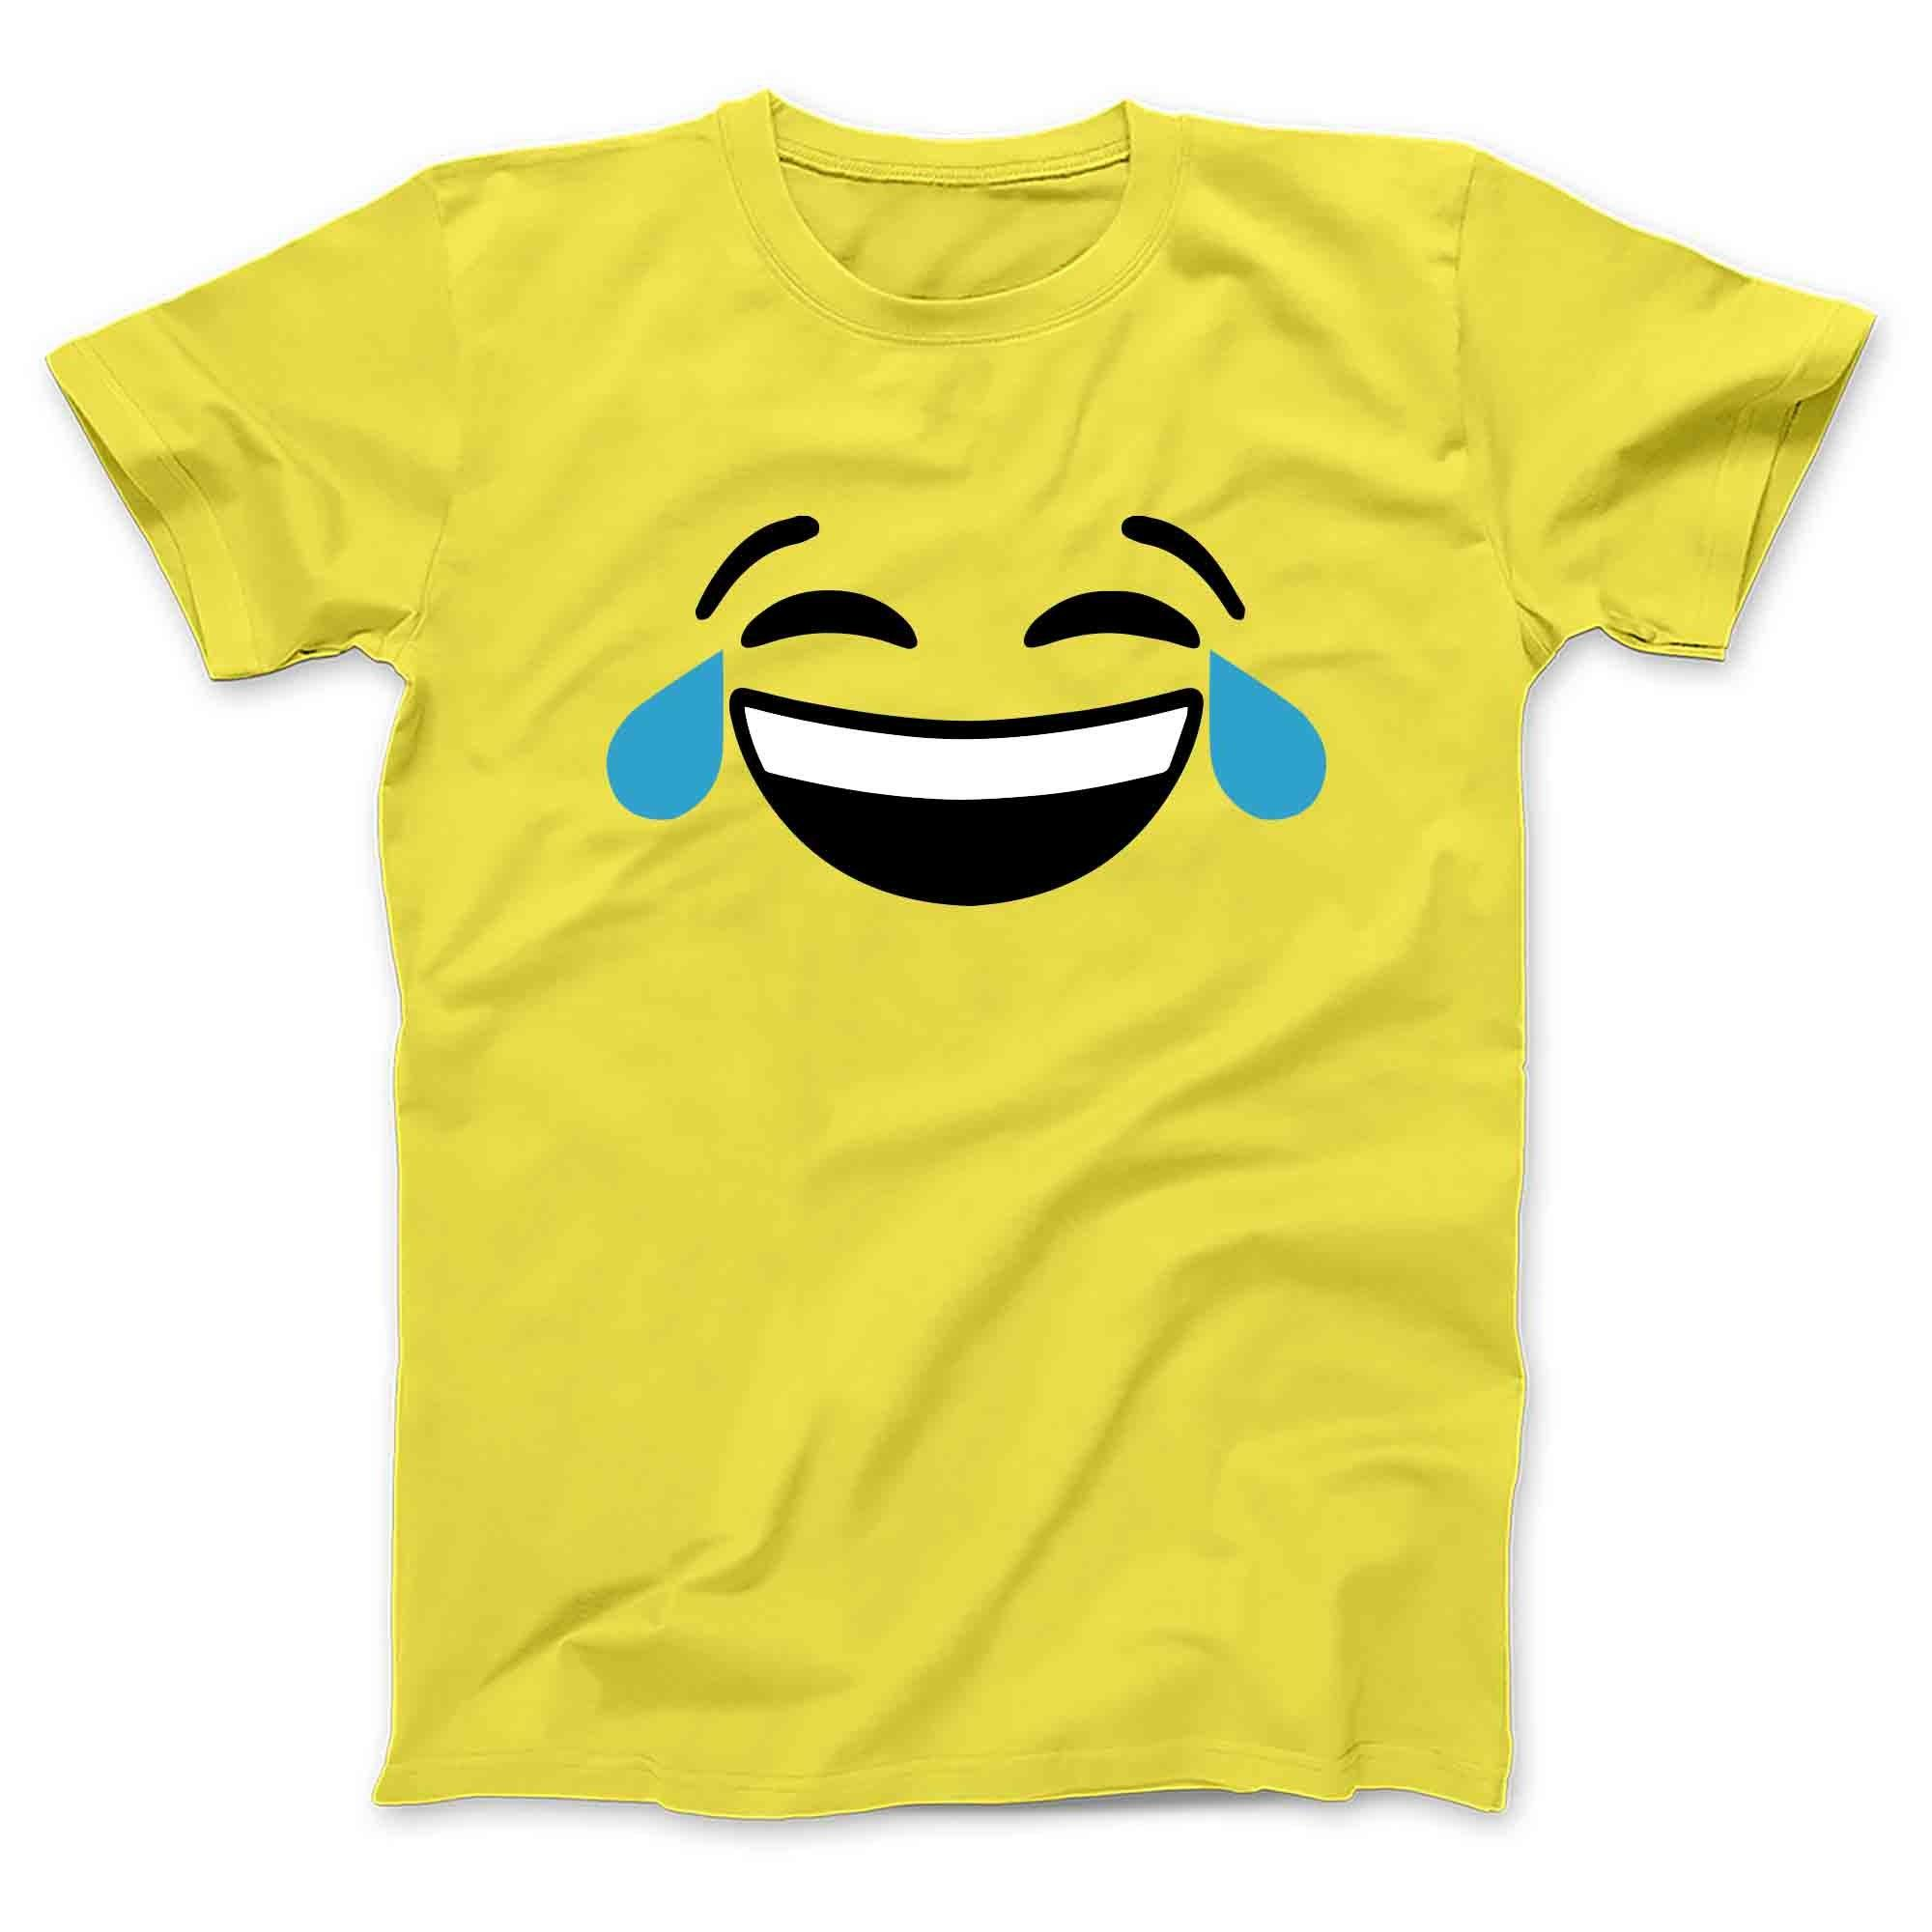 Smiley faces wink heart emoji - size s